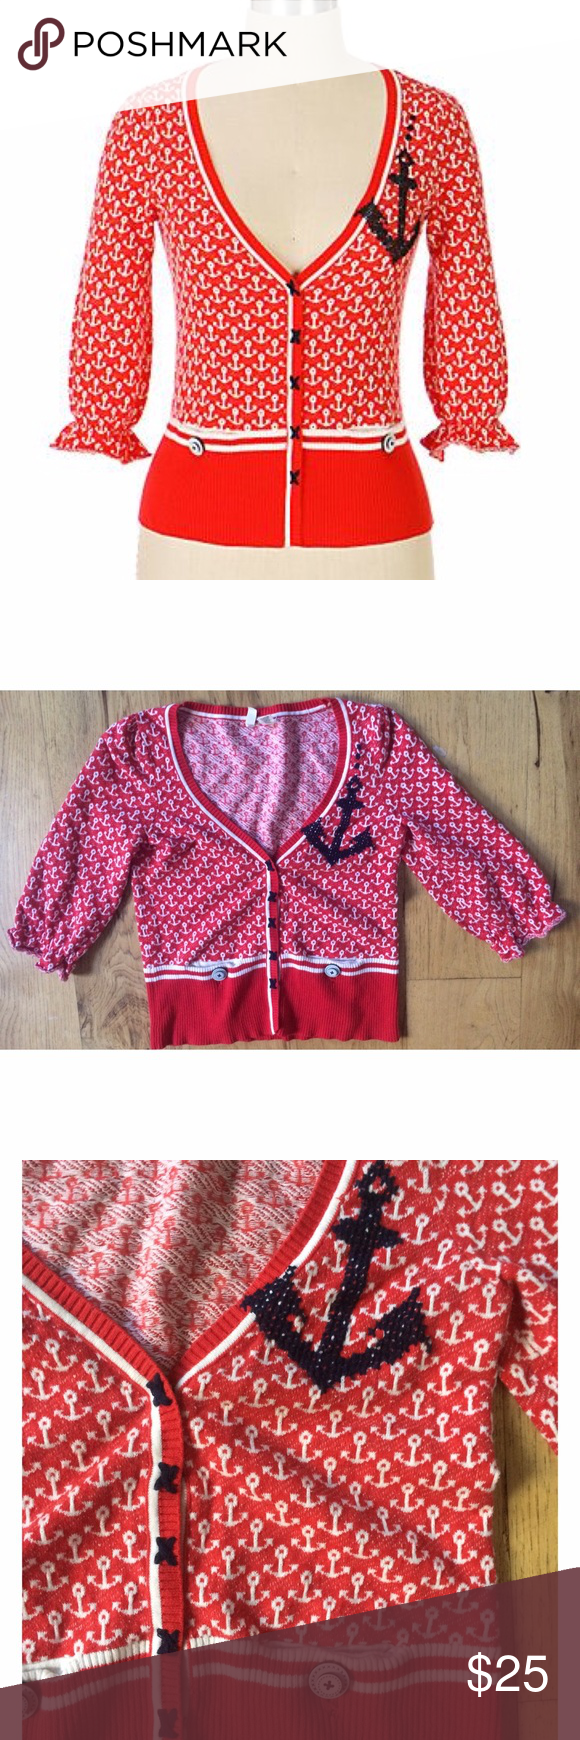 "EUC Anthropologie Moth Sailor Anchors Cardigan In really good pre-loved condition cardigan from Anthropologie Moth in size x-small. Features cute Sailor Anchors Print all over. 100% cotton. Measure about 18"" length, 15"" pit to pit, 14"" sleeves. No snags or major flaws. Snap buttons closured. Run smalls. Best fits for a smaller petite person. ❌No trades or modeling. Open to reasonable offers. Thank you‼️ Anthropologie Sweaters Cardigans"